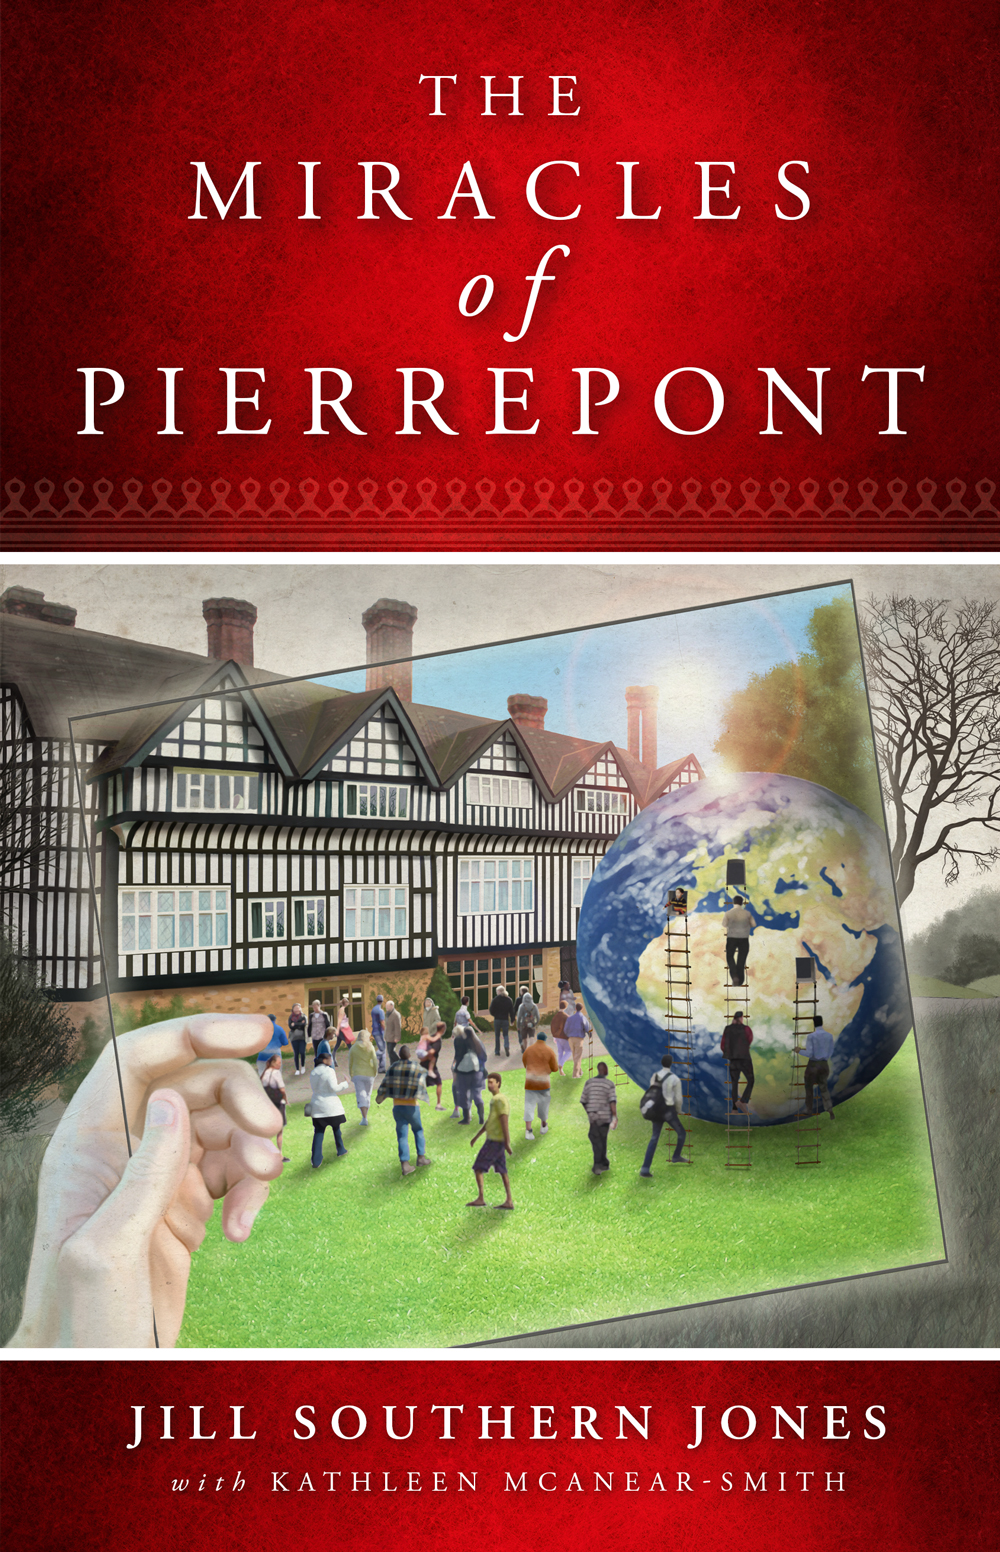 The Miracles of Pierrepont